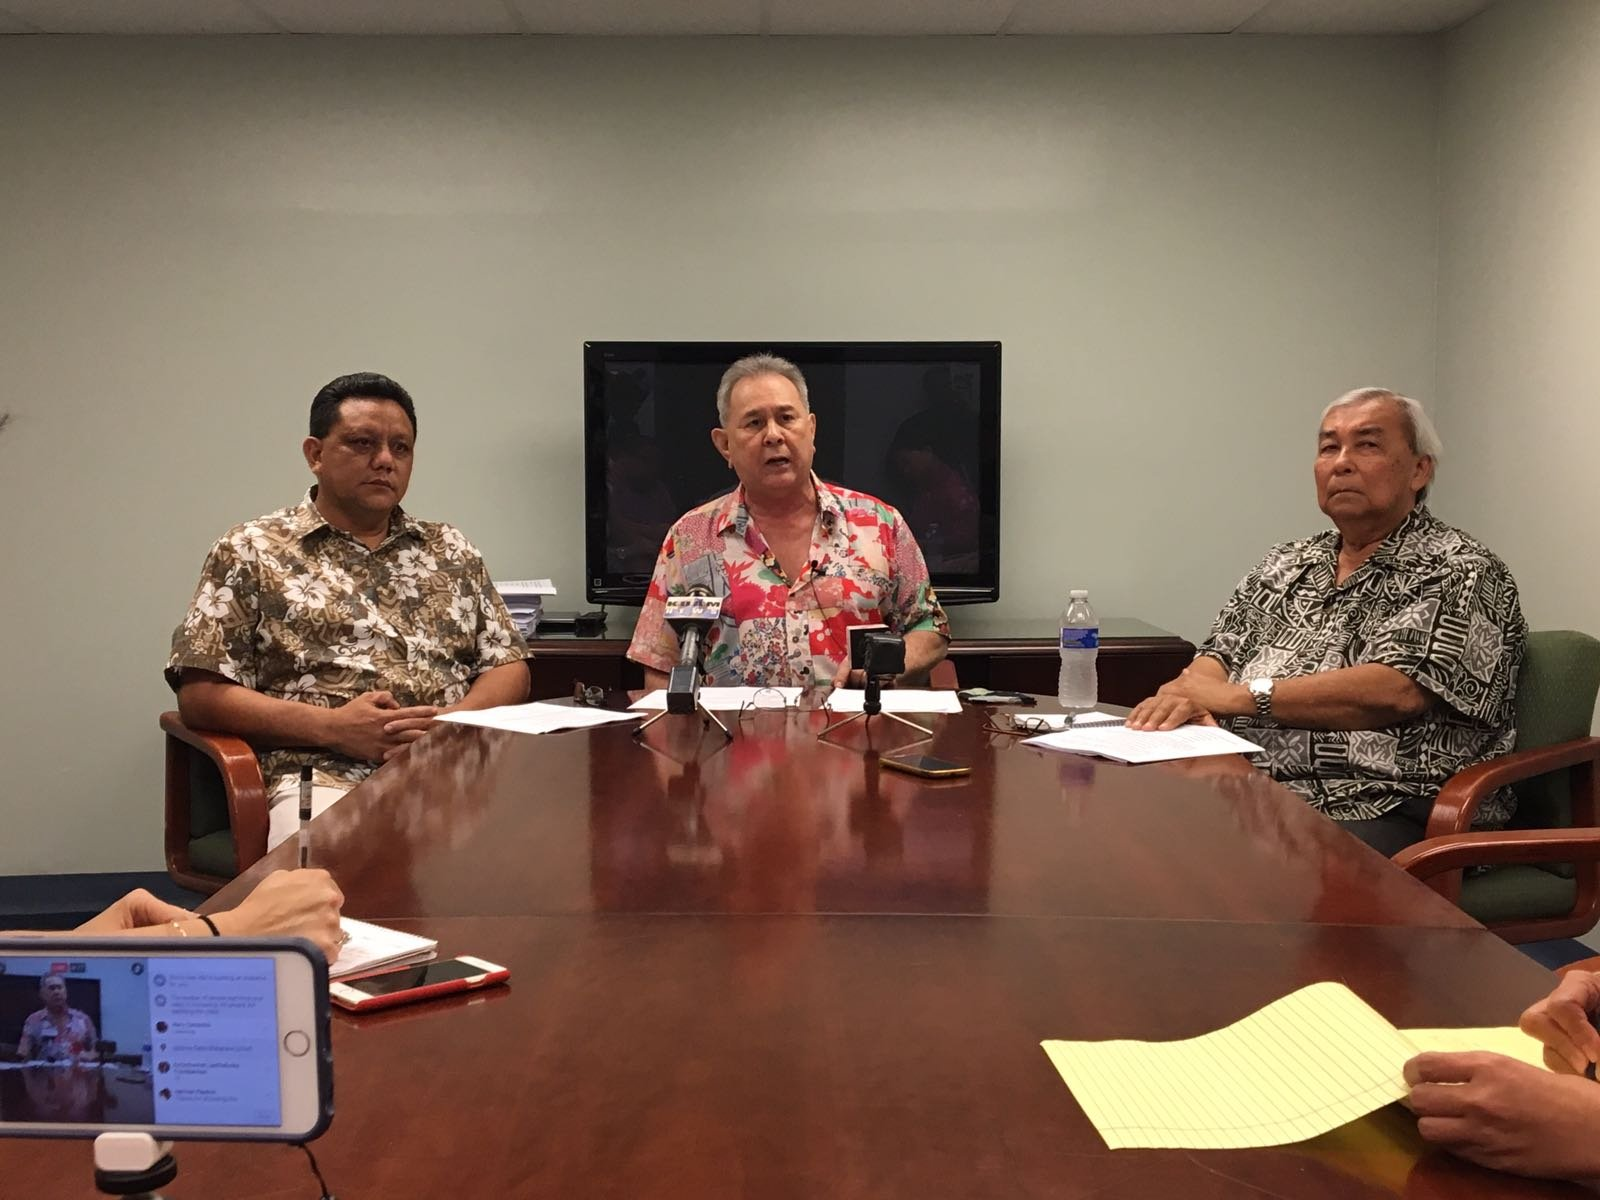 New Guam bishop to take over immediately with full power